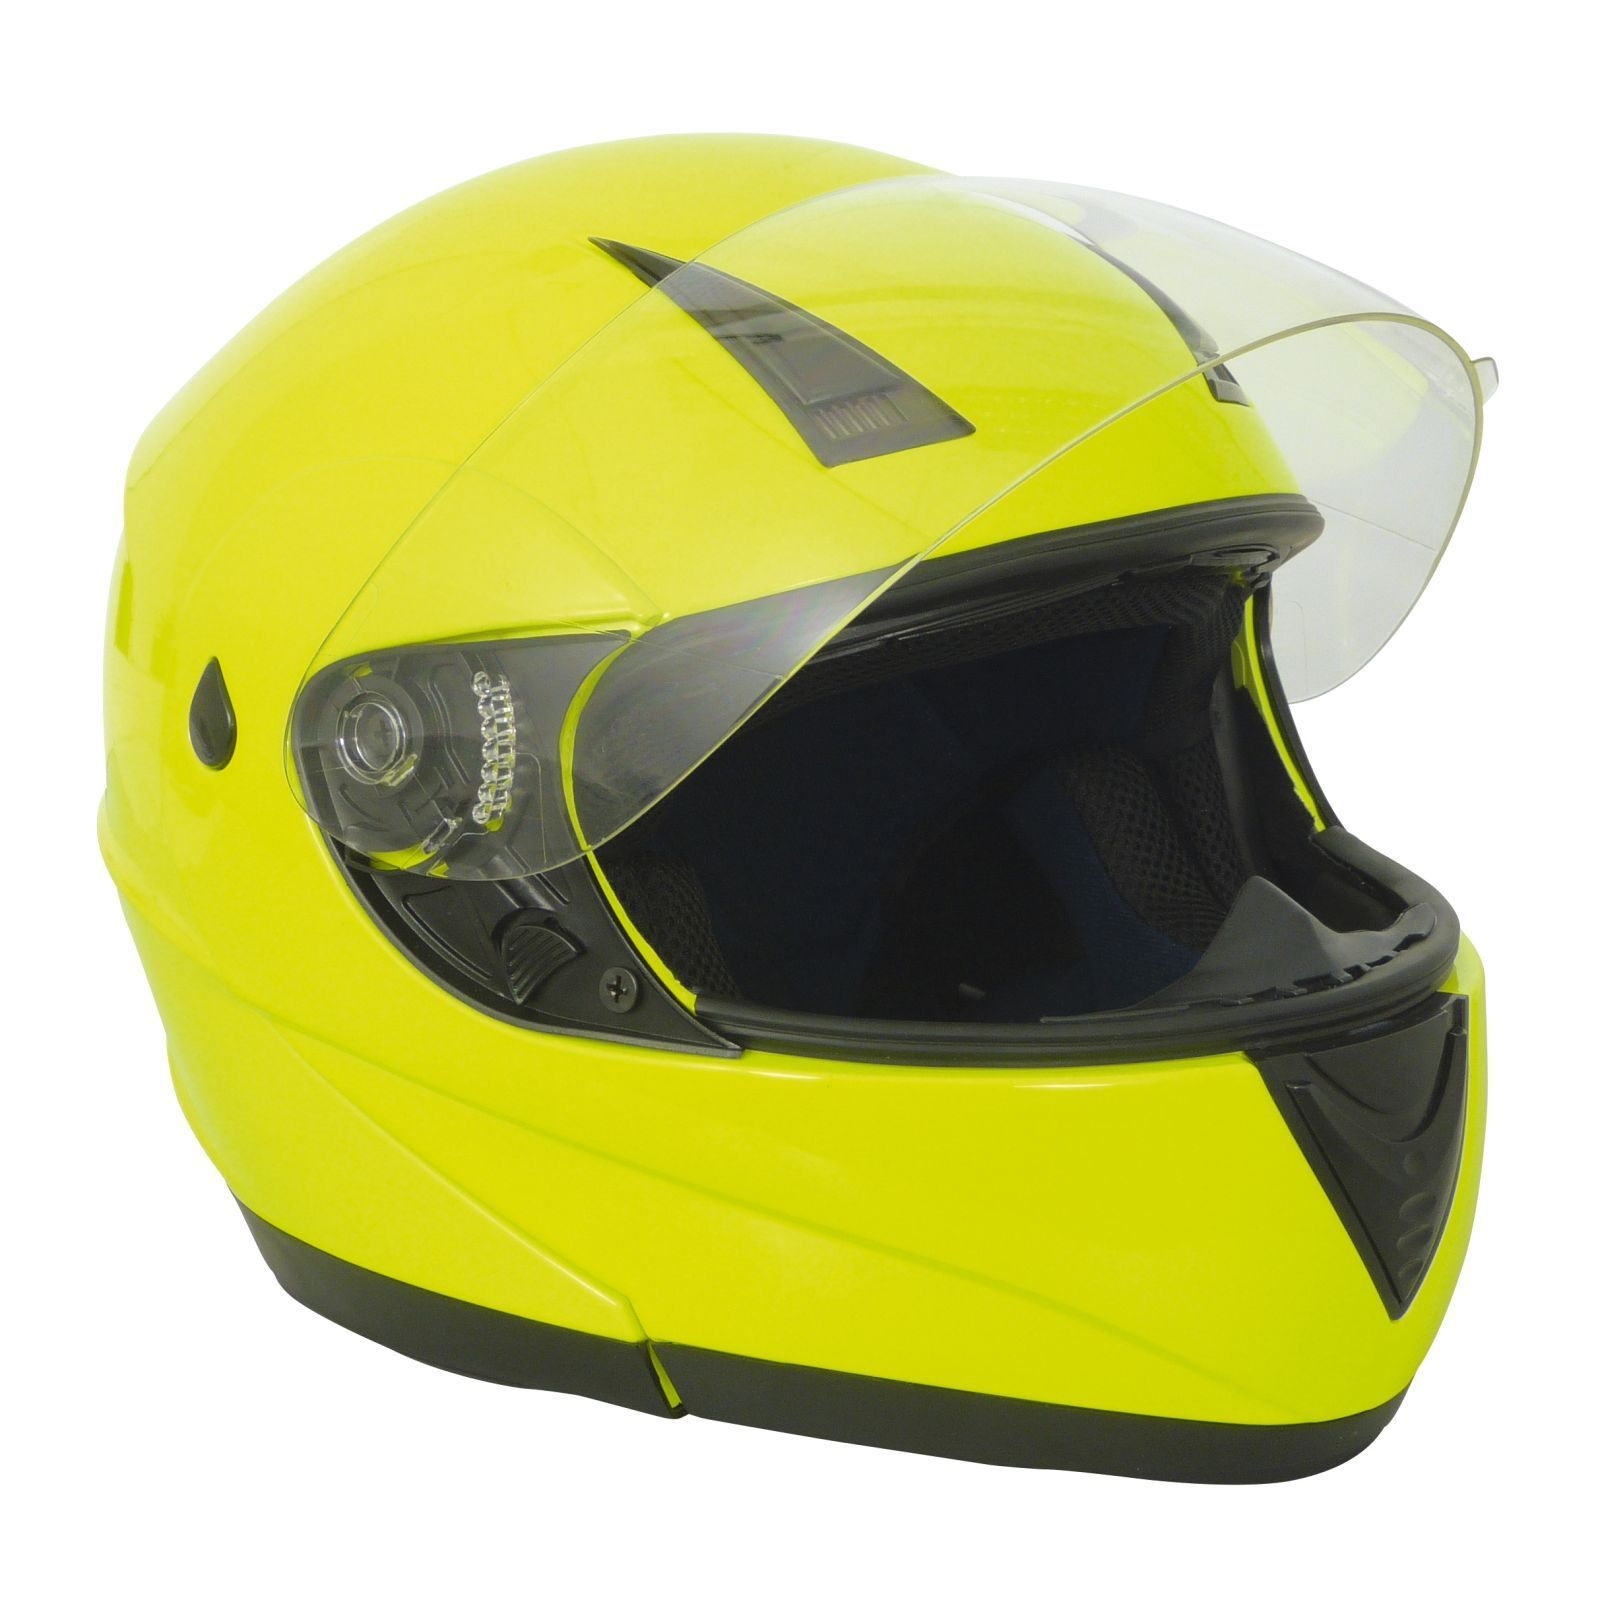 motorx casque moto jaune brandalley. Black Bedroom Furniture Sets. Home Design Ideas